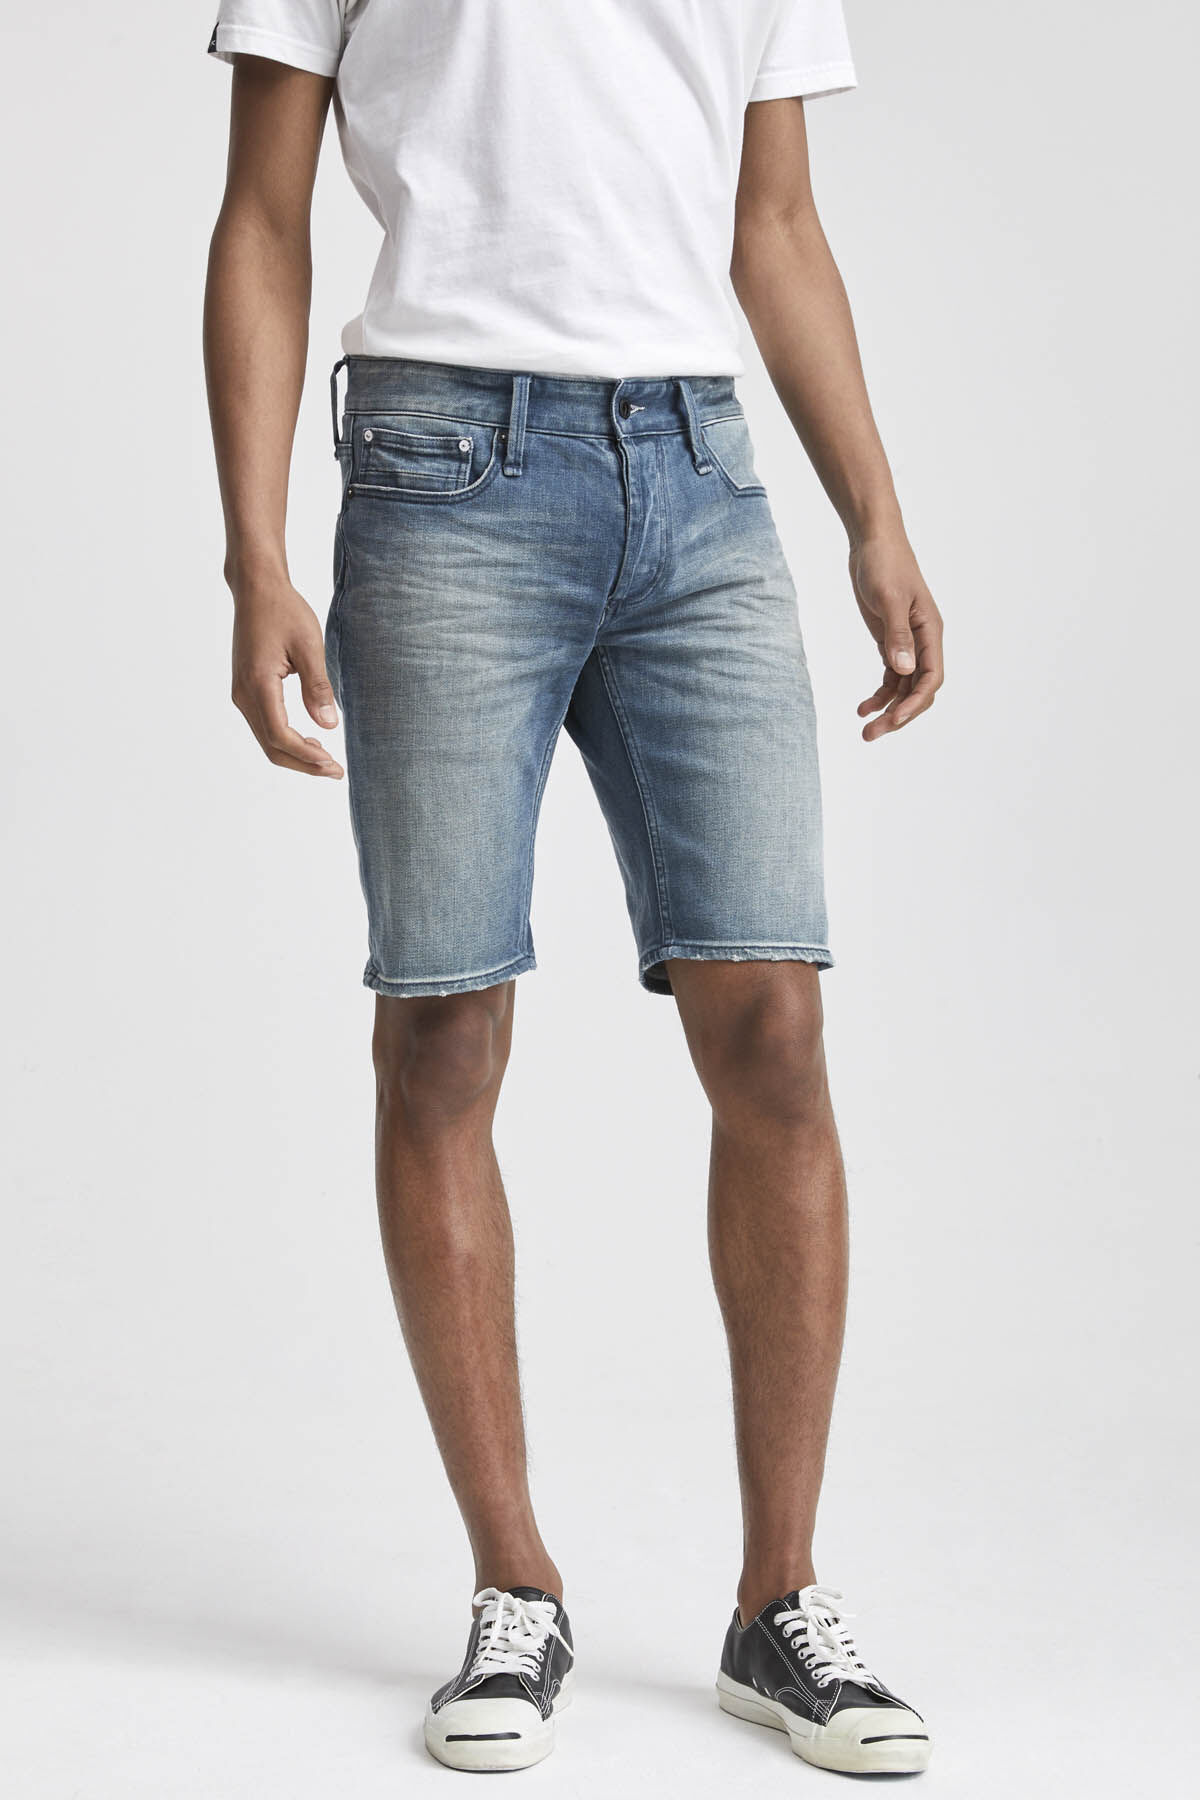 RAZOR SHORT 3D Whisker Pattern Denim - Slim Fit